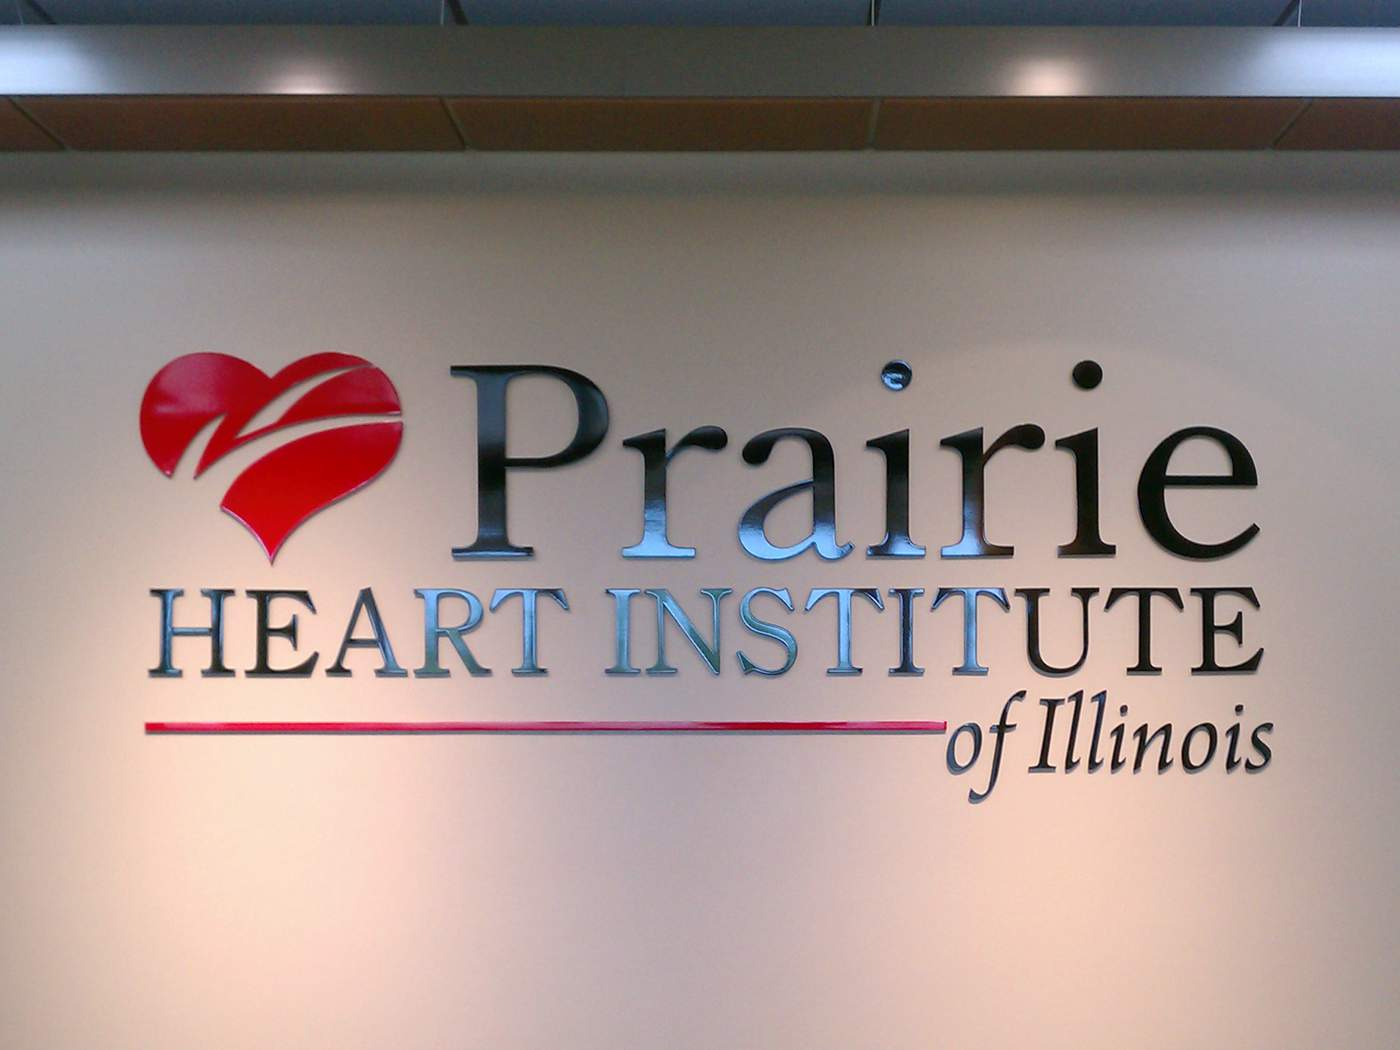 Custom Acrylic Signage for Prairie Heart Institute - Decatur, IL